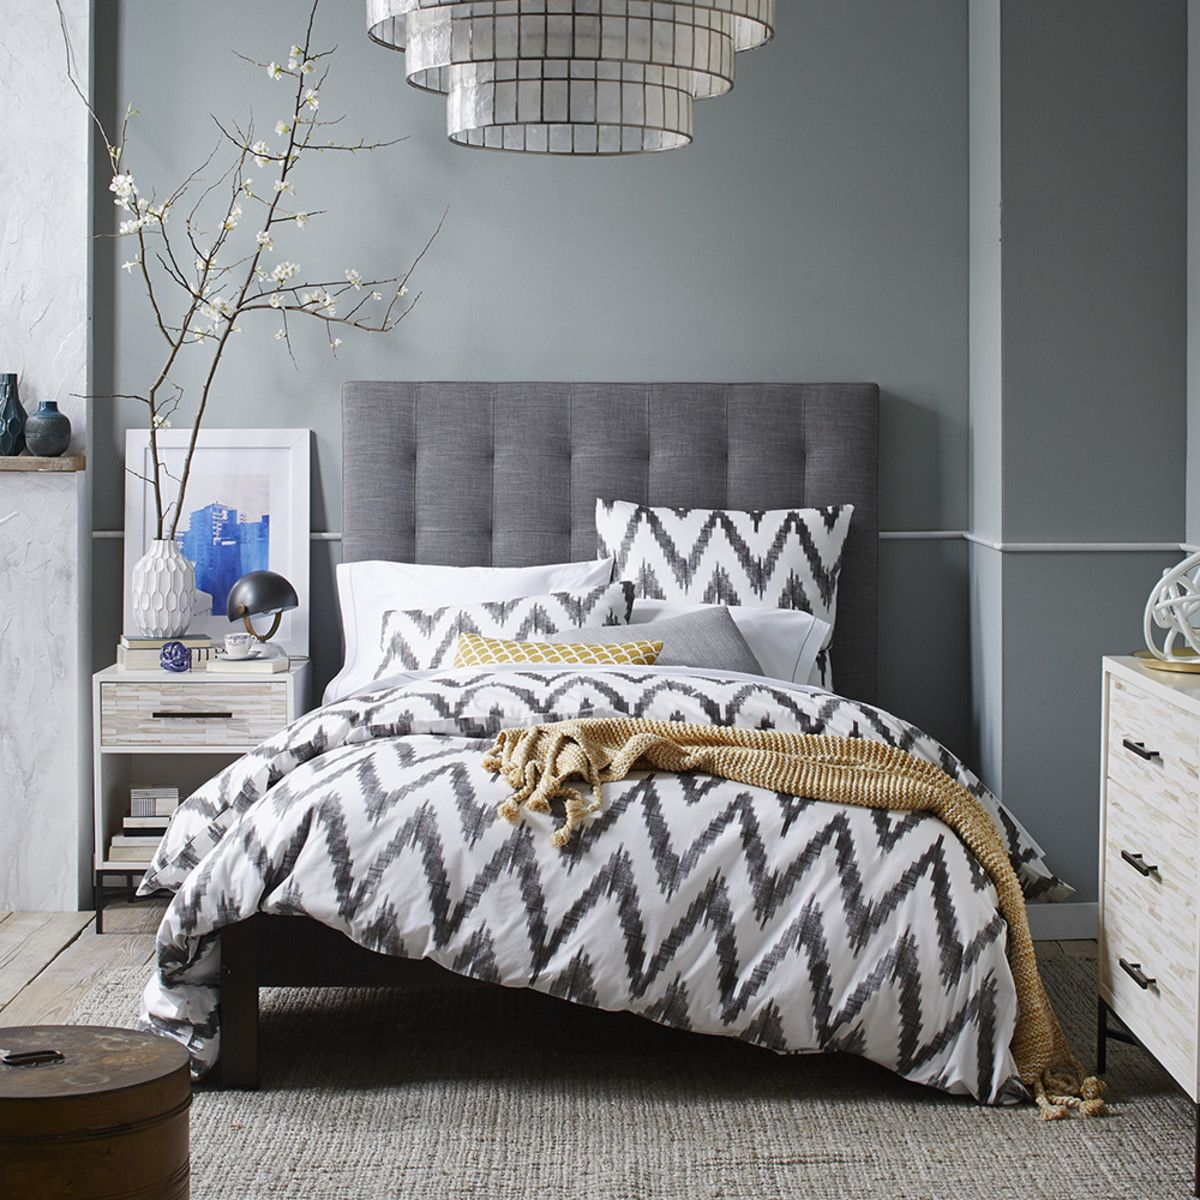 tall grid tufted headboard from west elm is it too high otherwise i adore it bedroom. Black Bedroom Furniture Sets. Home Design Ideas